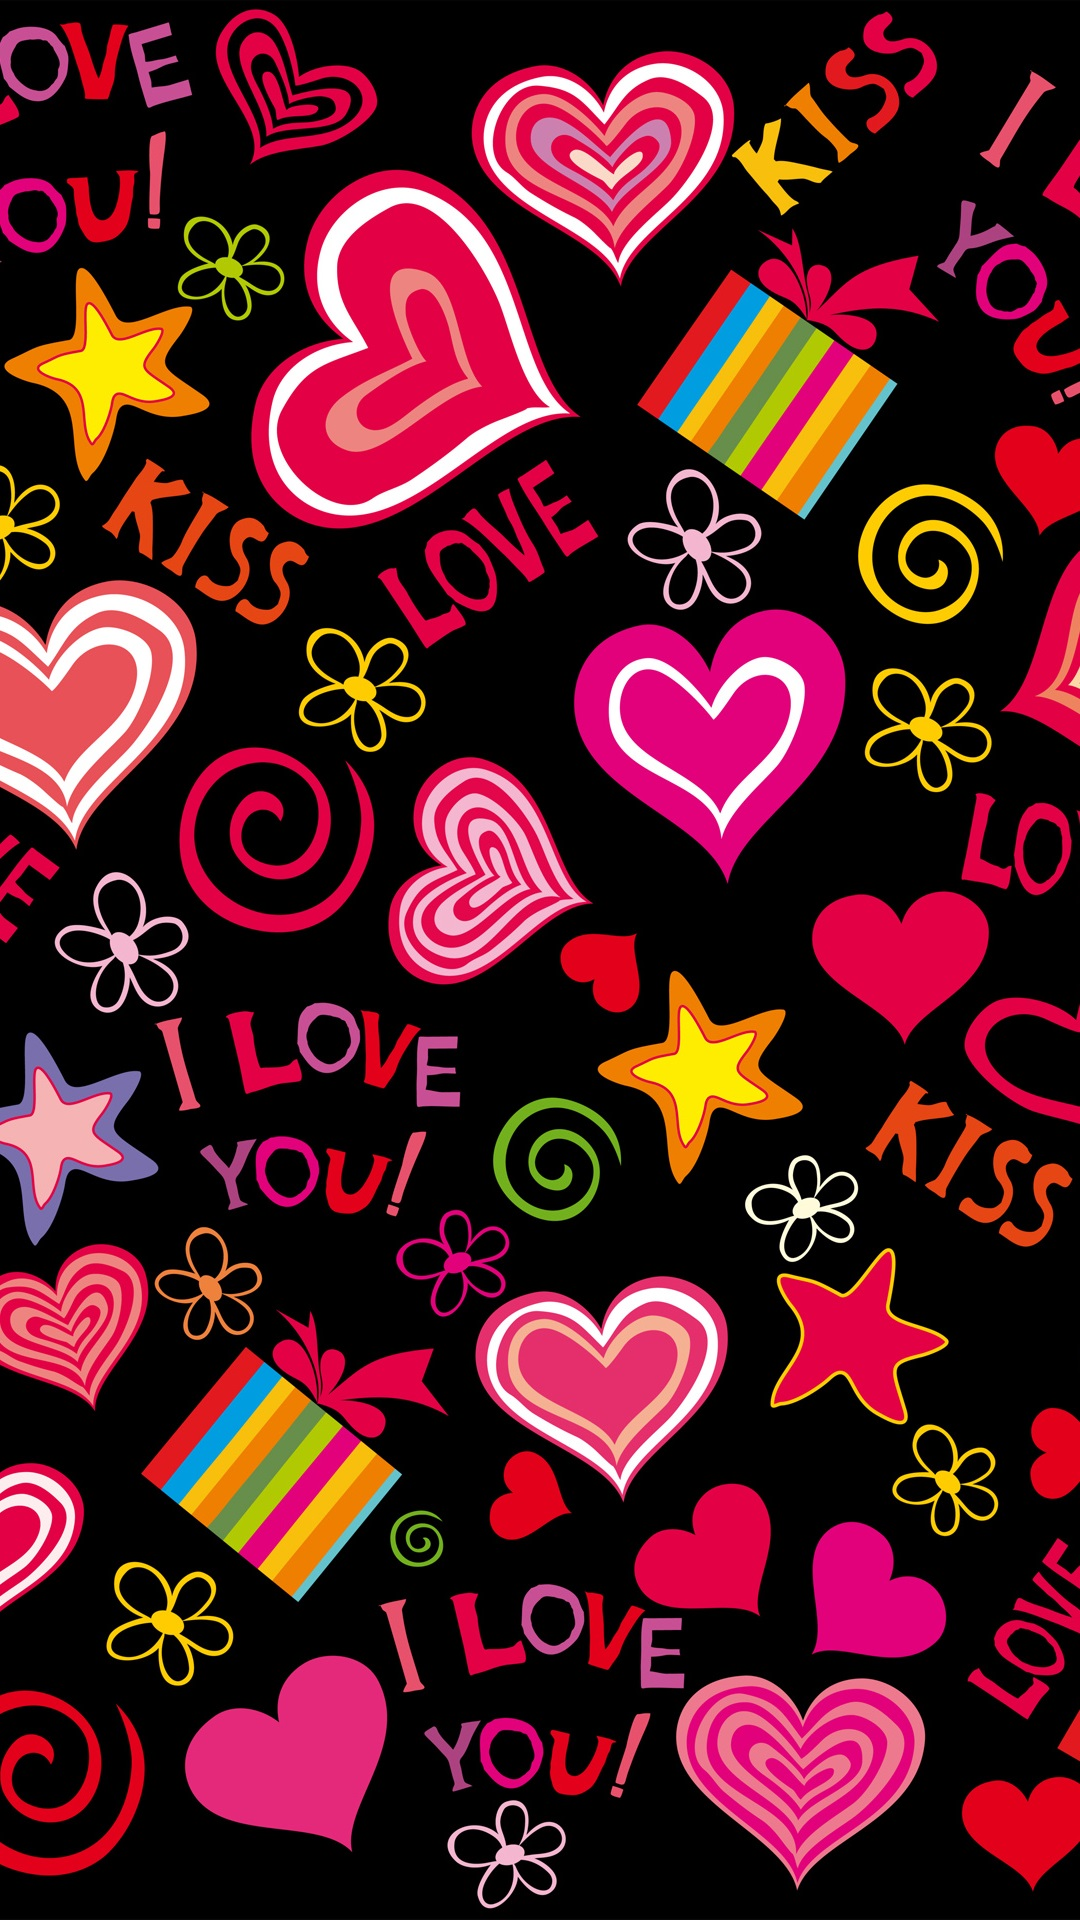 Love Wallpaper For Iphone 3gs : colorful love hearts, sweet, vector, romantic iPhone ...